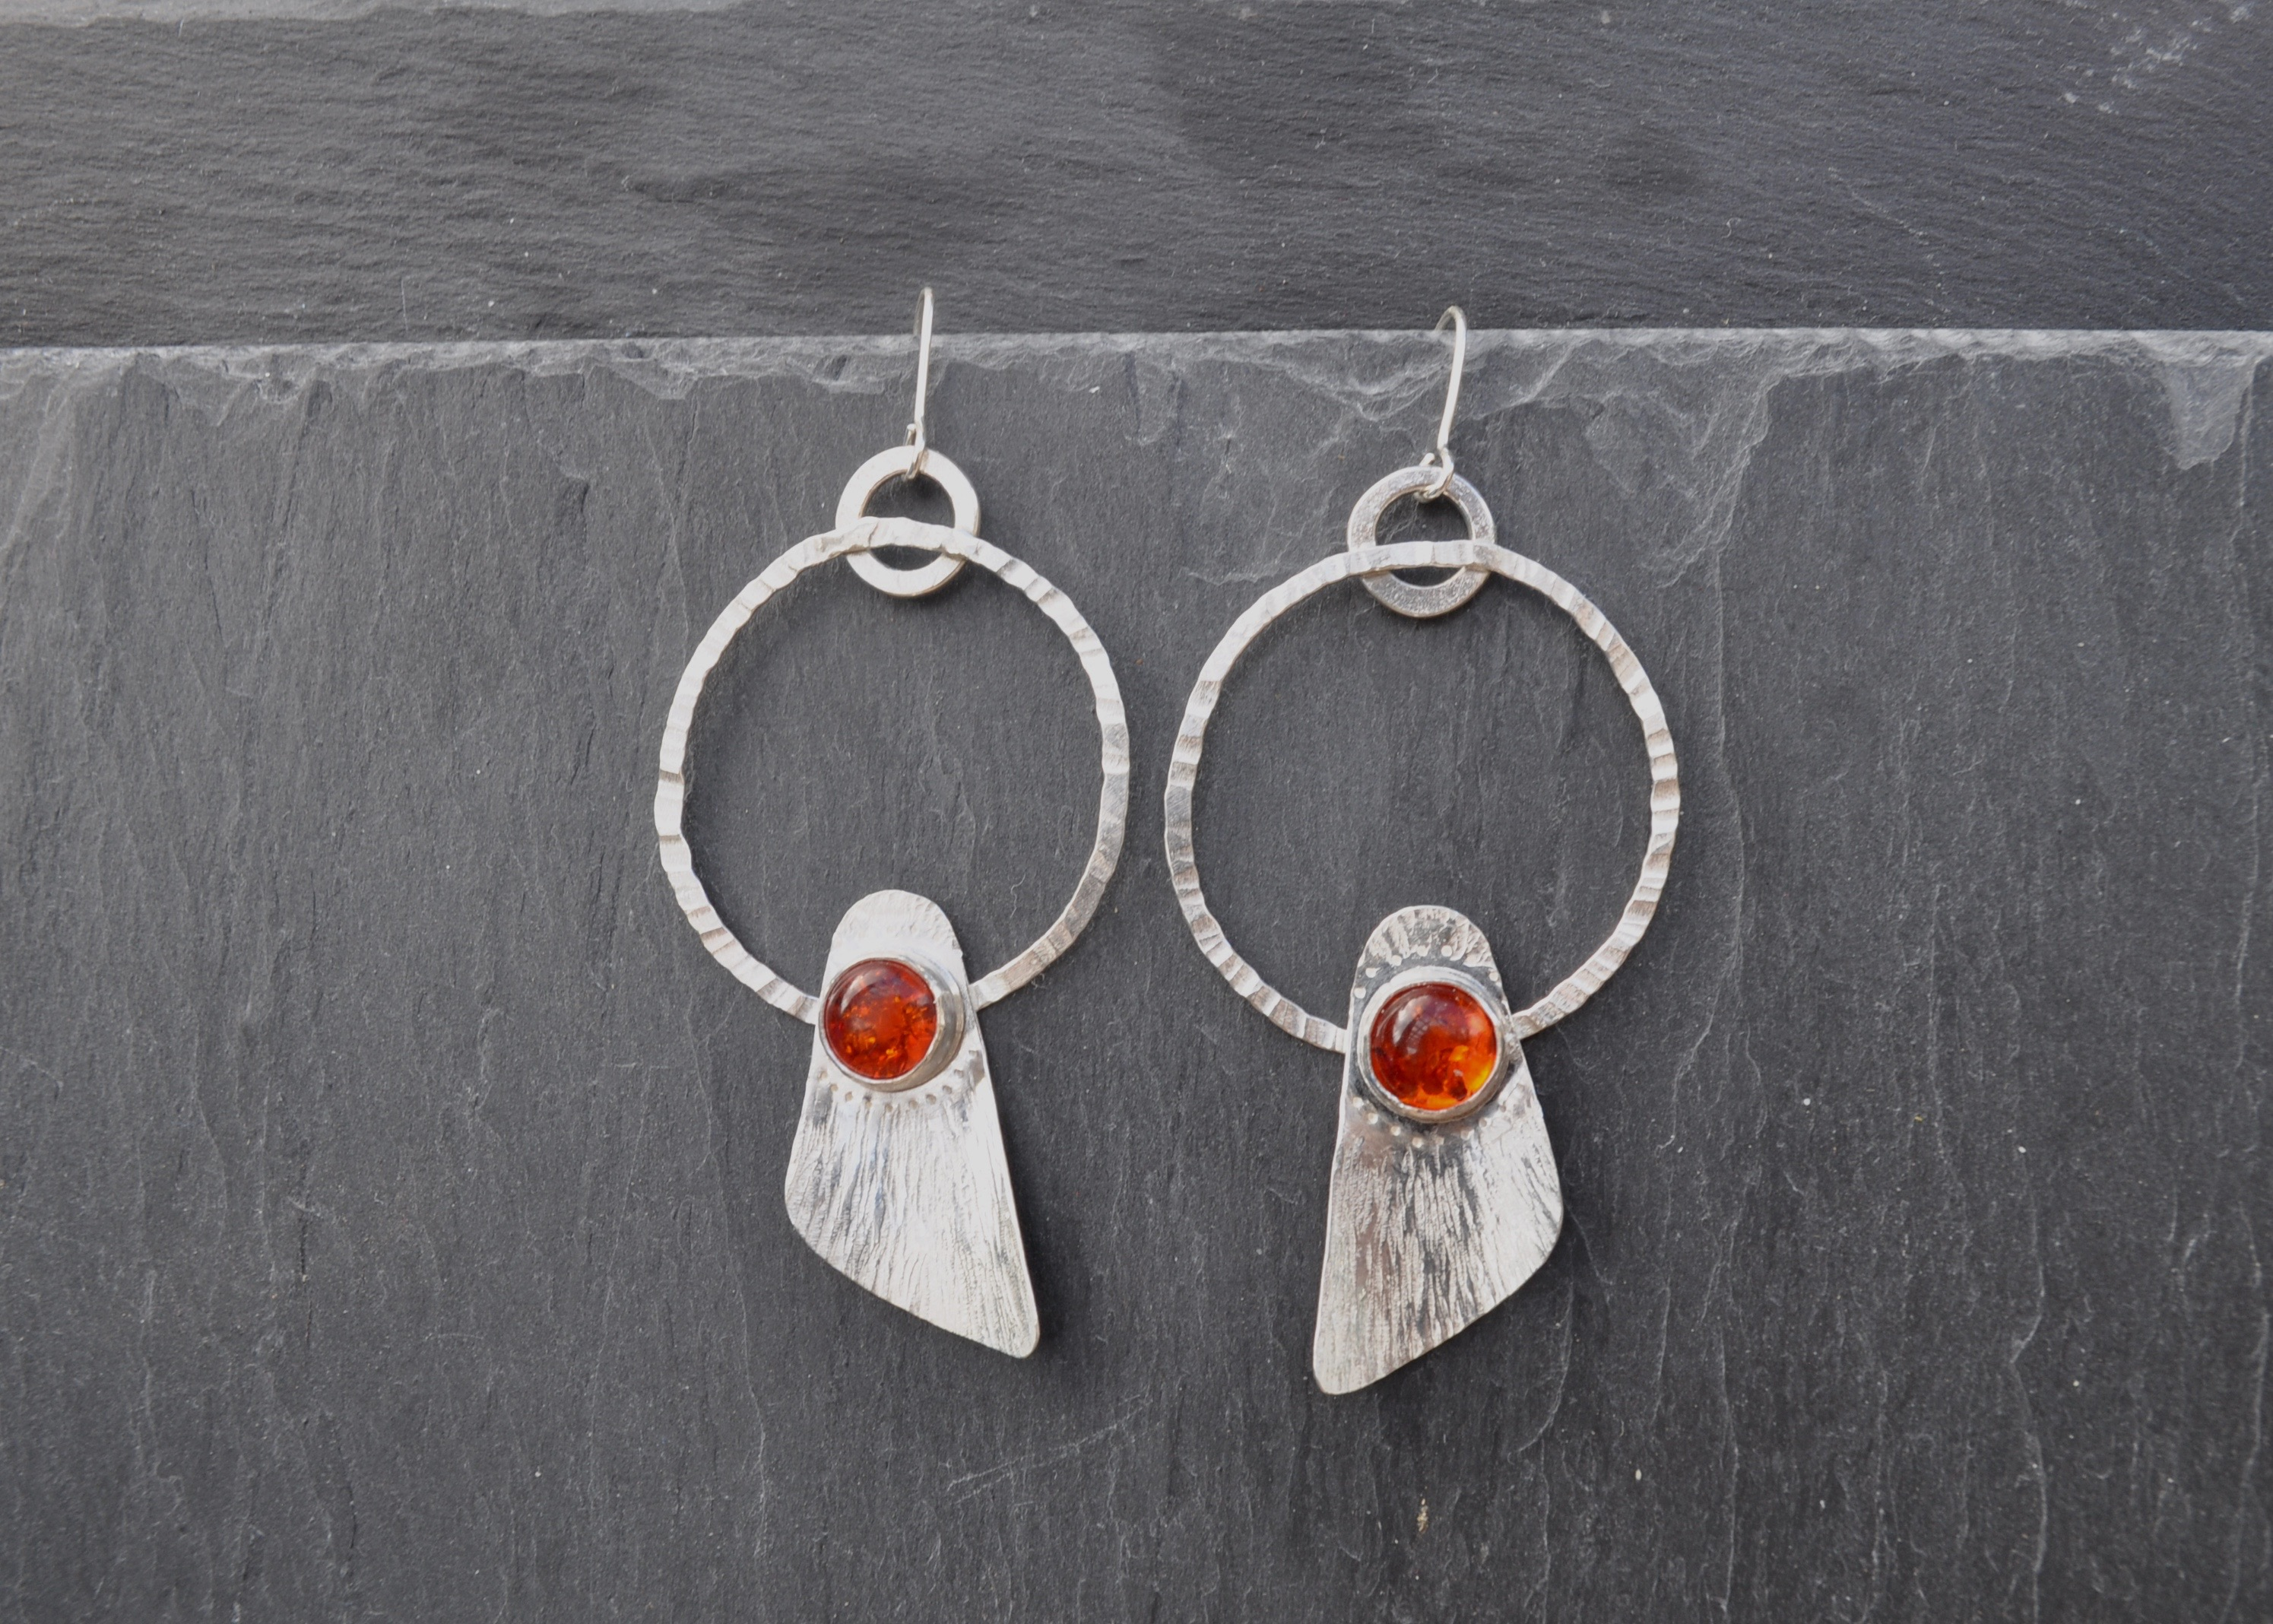 Amber set in sterling silver, seed pod inspired earrings.